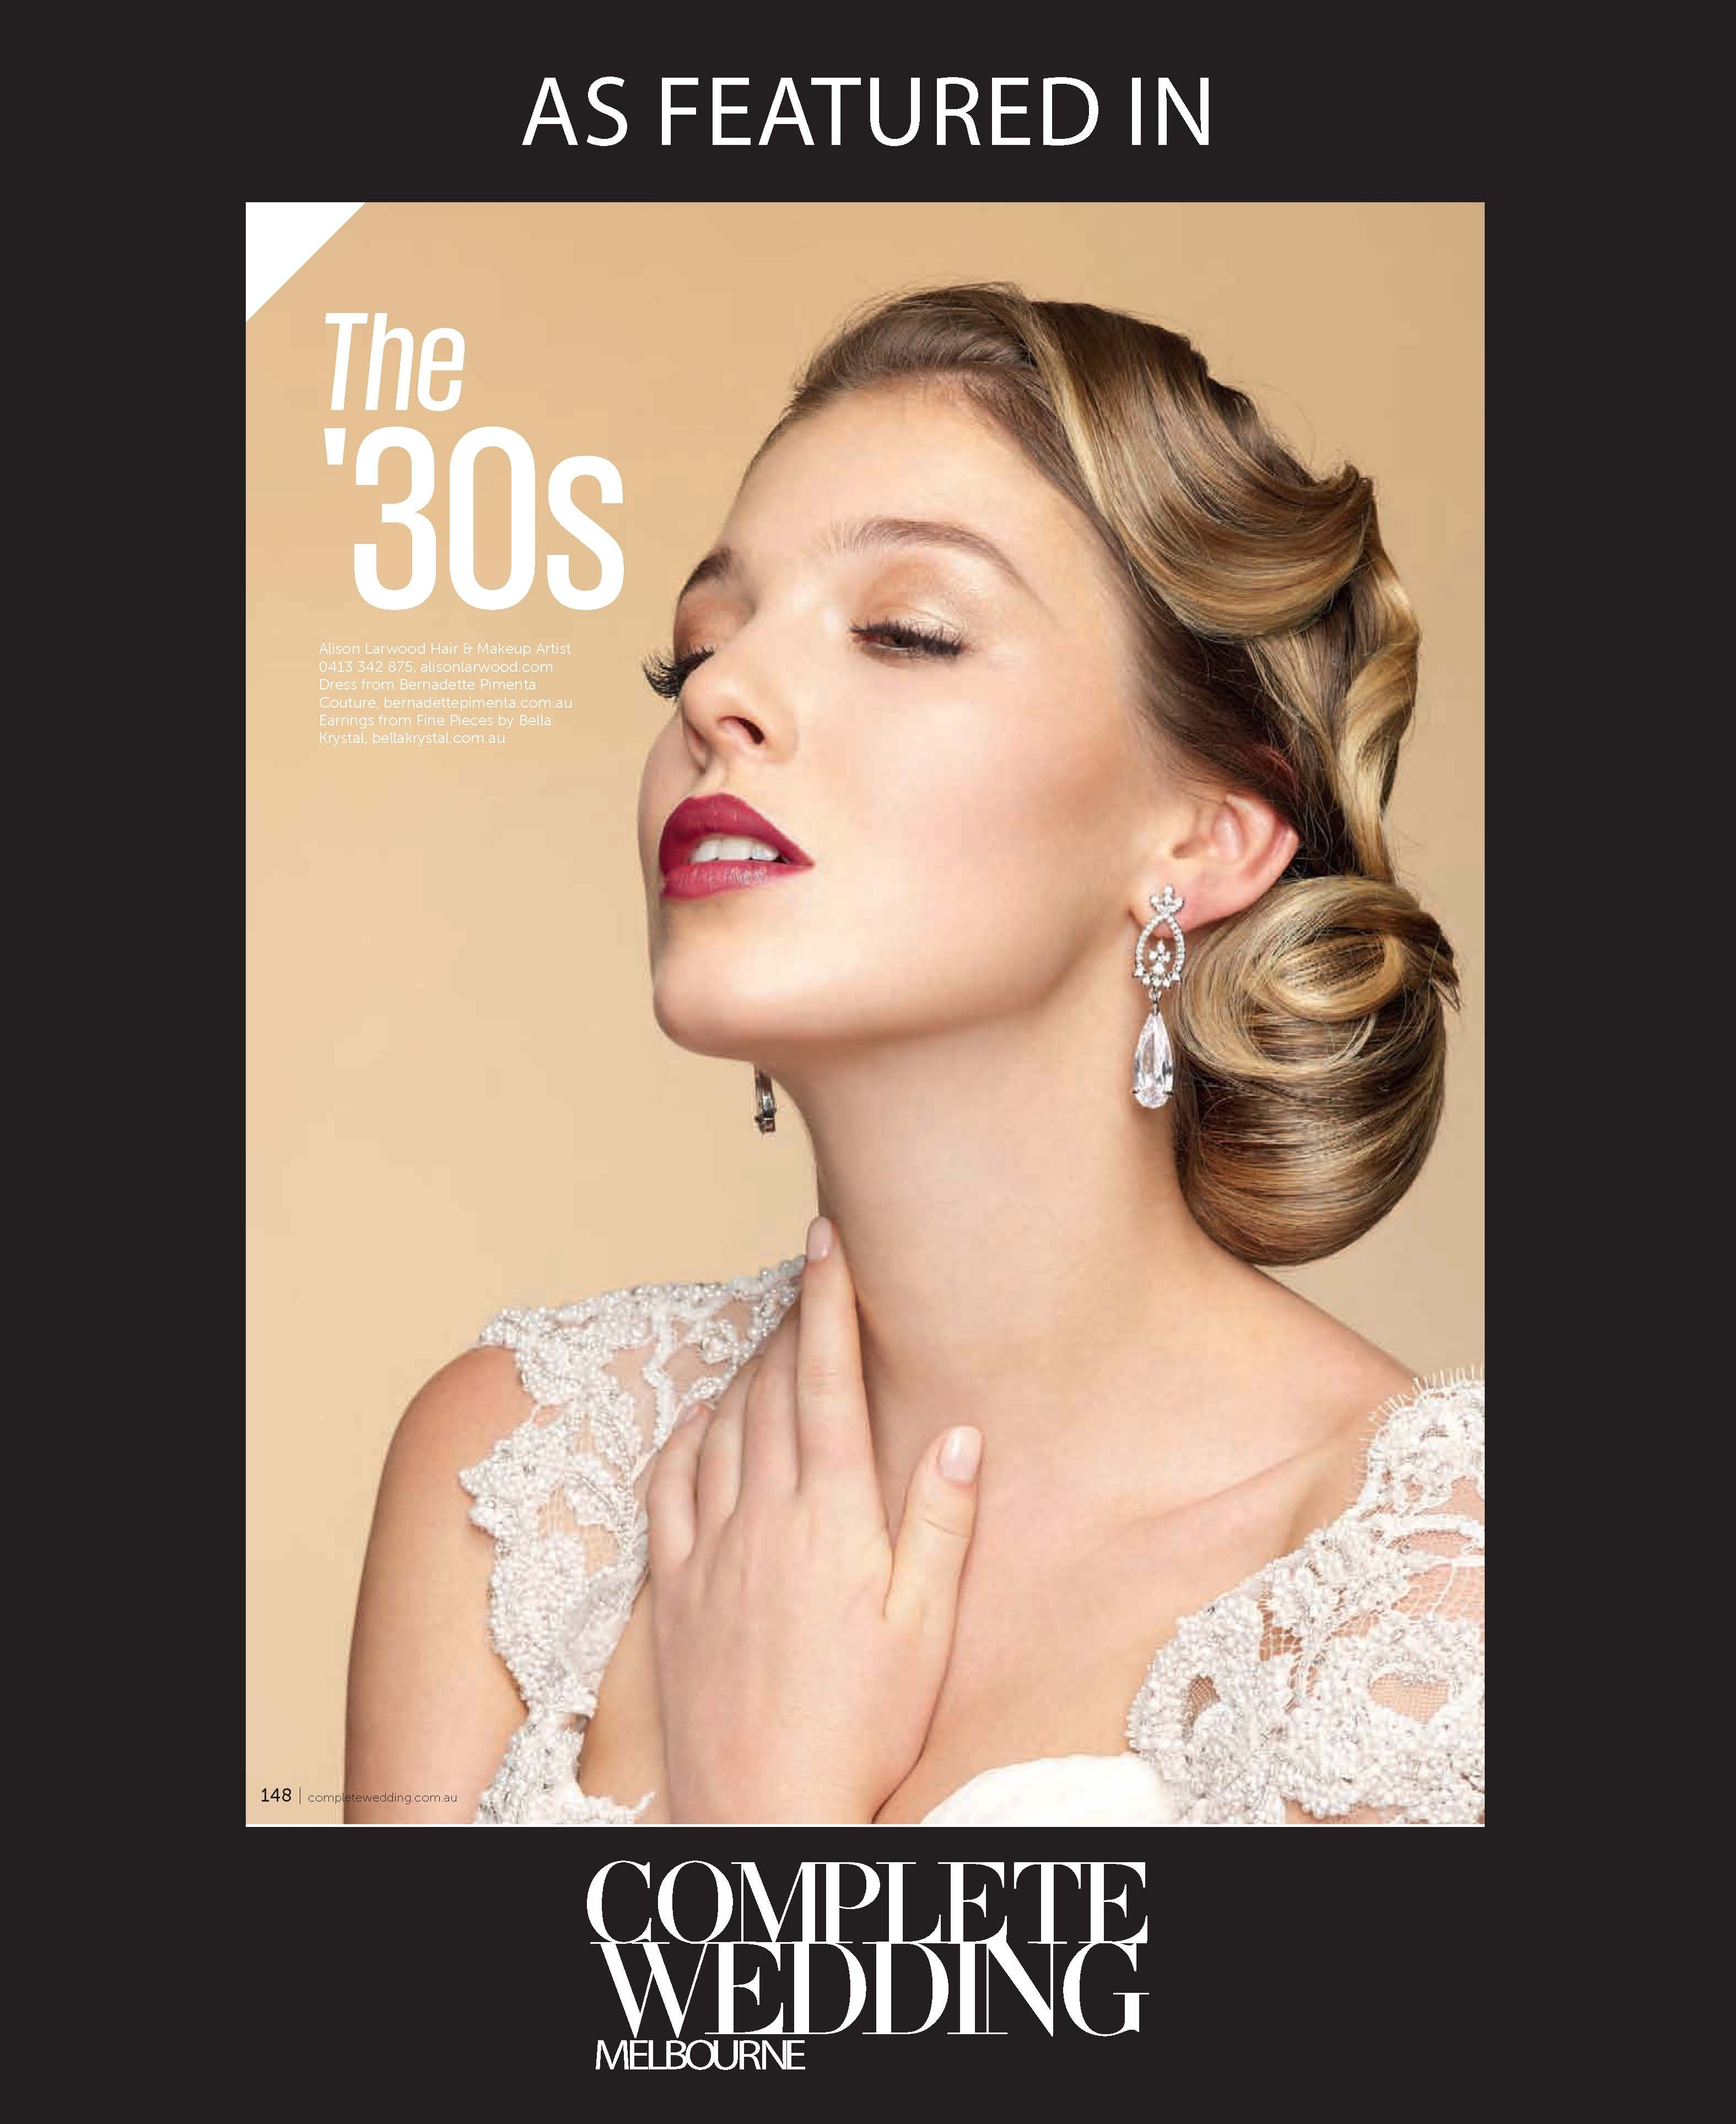 The '30s by #AlisonLarwood #vintage #silverscreen #glamour #dramatic